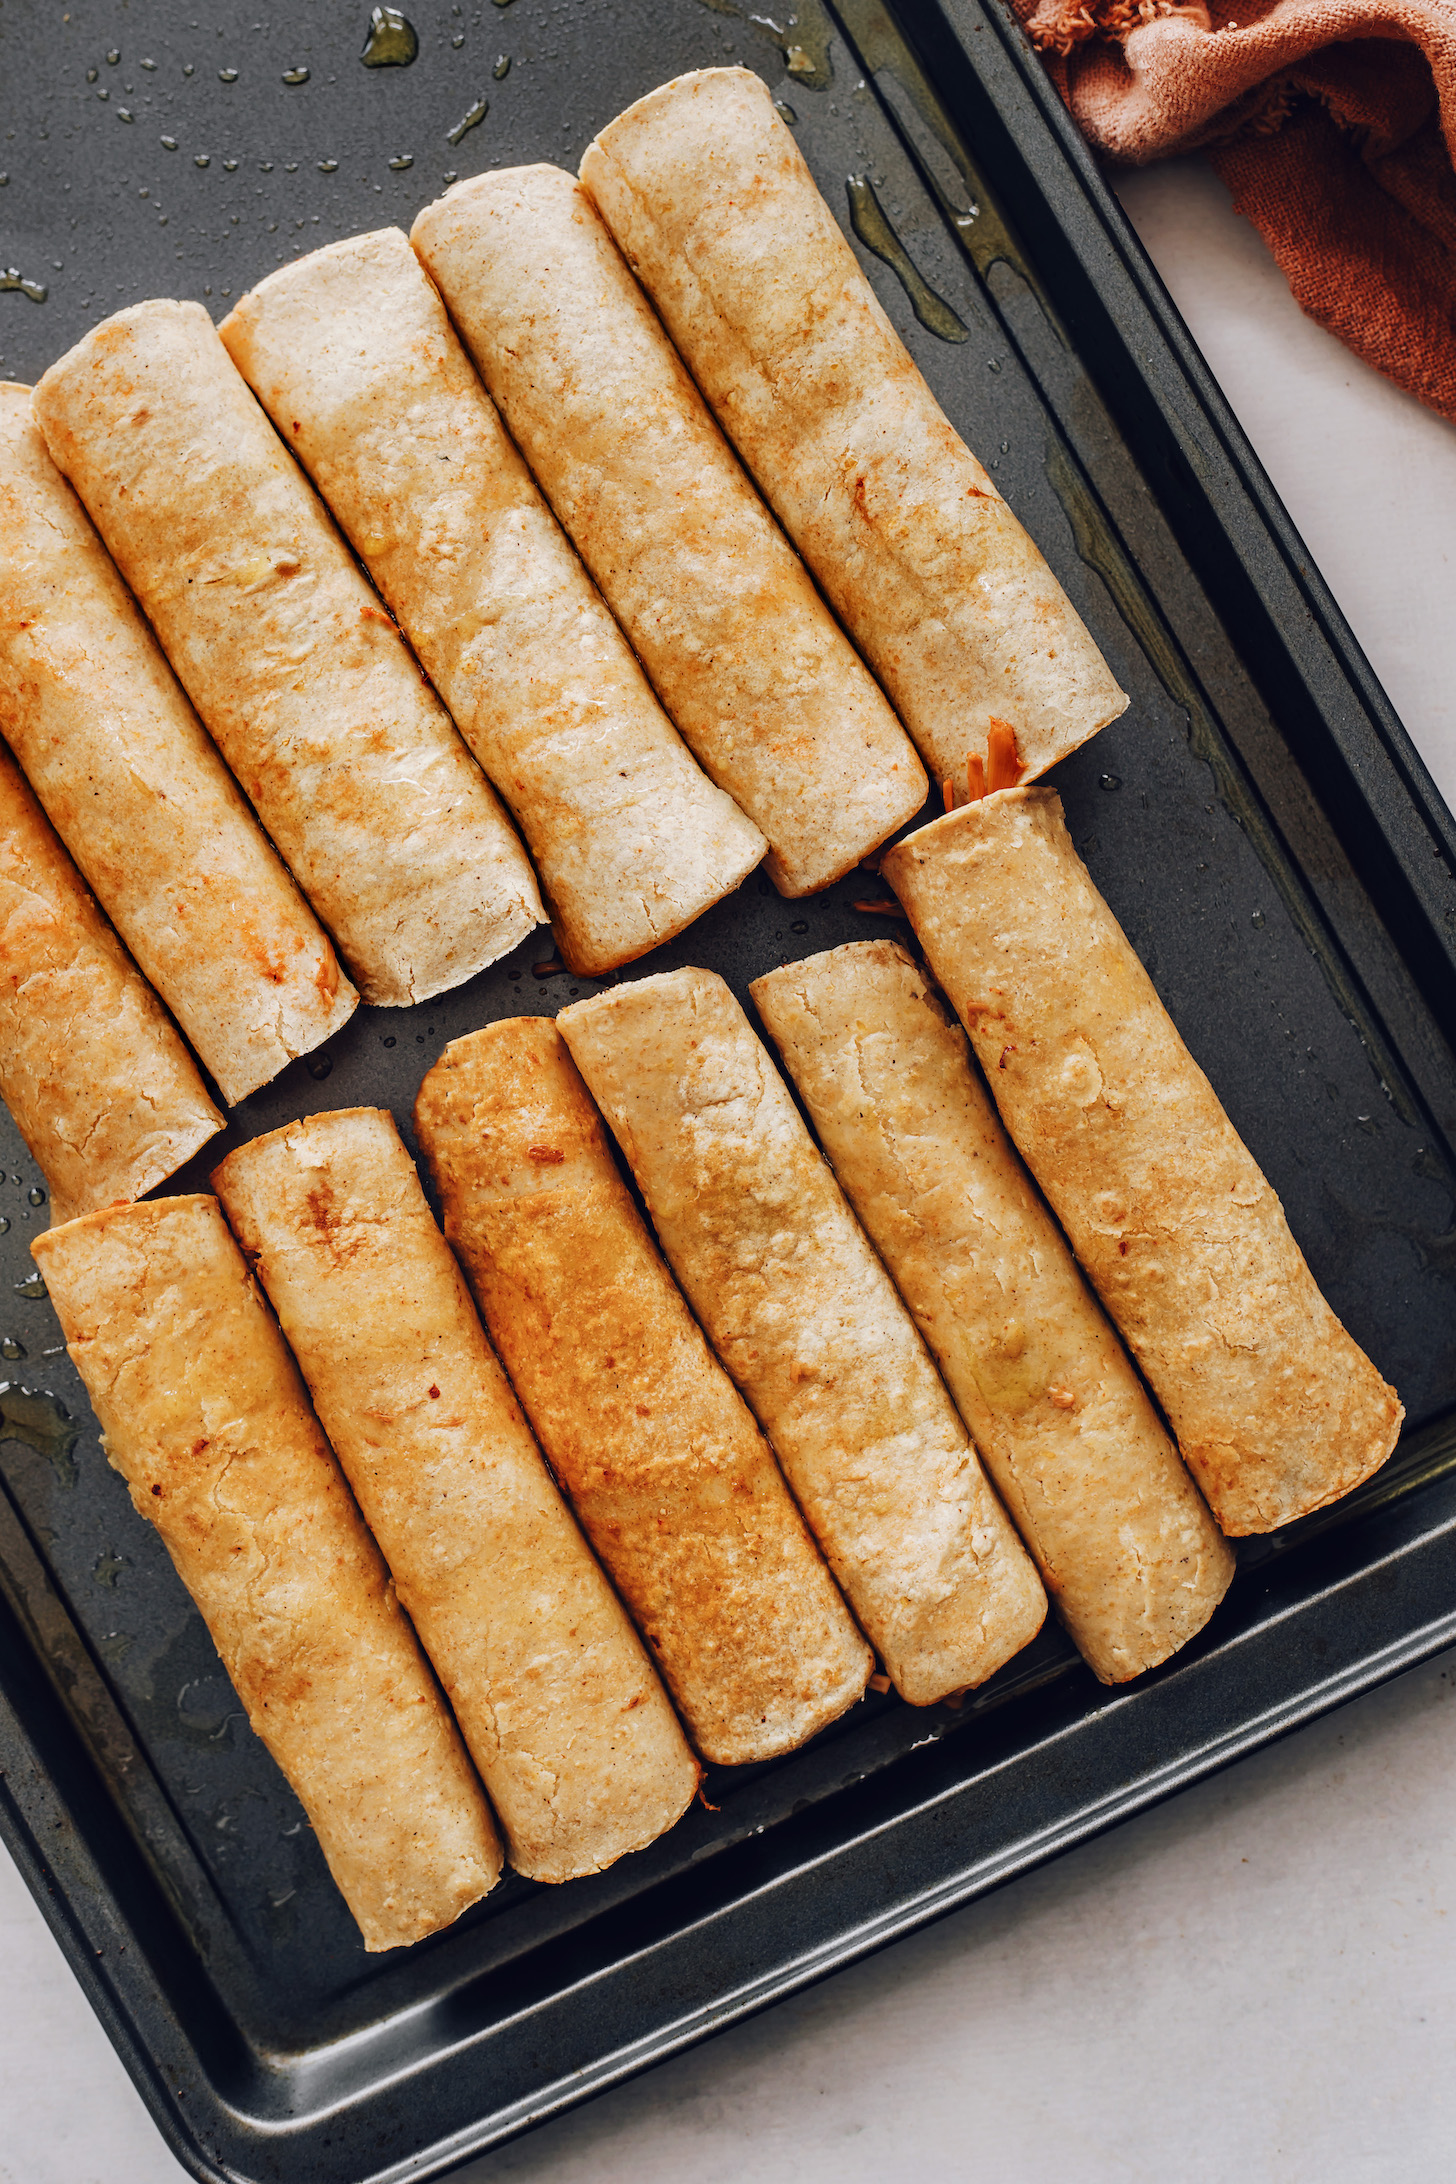 Vegan taquitos on a baking sheet ready to go in the oven